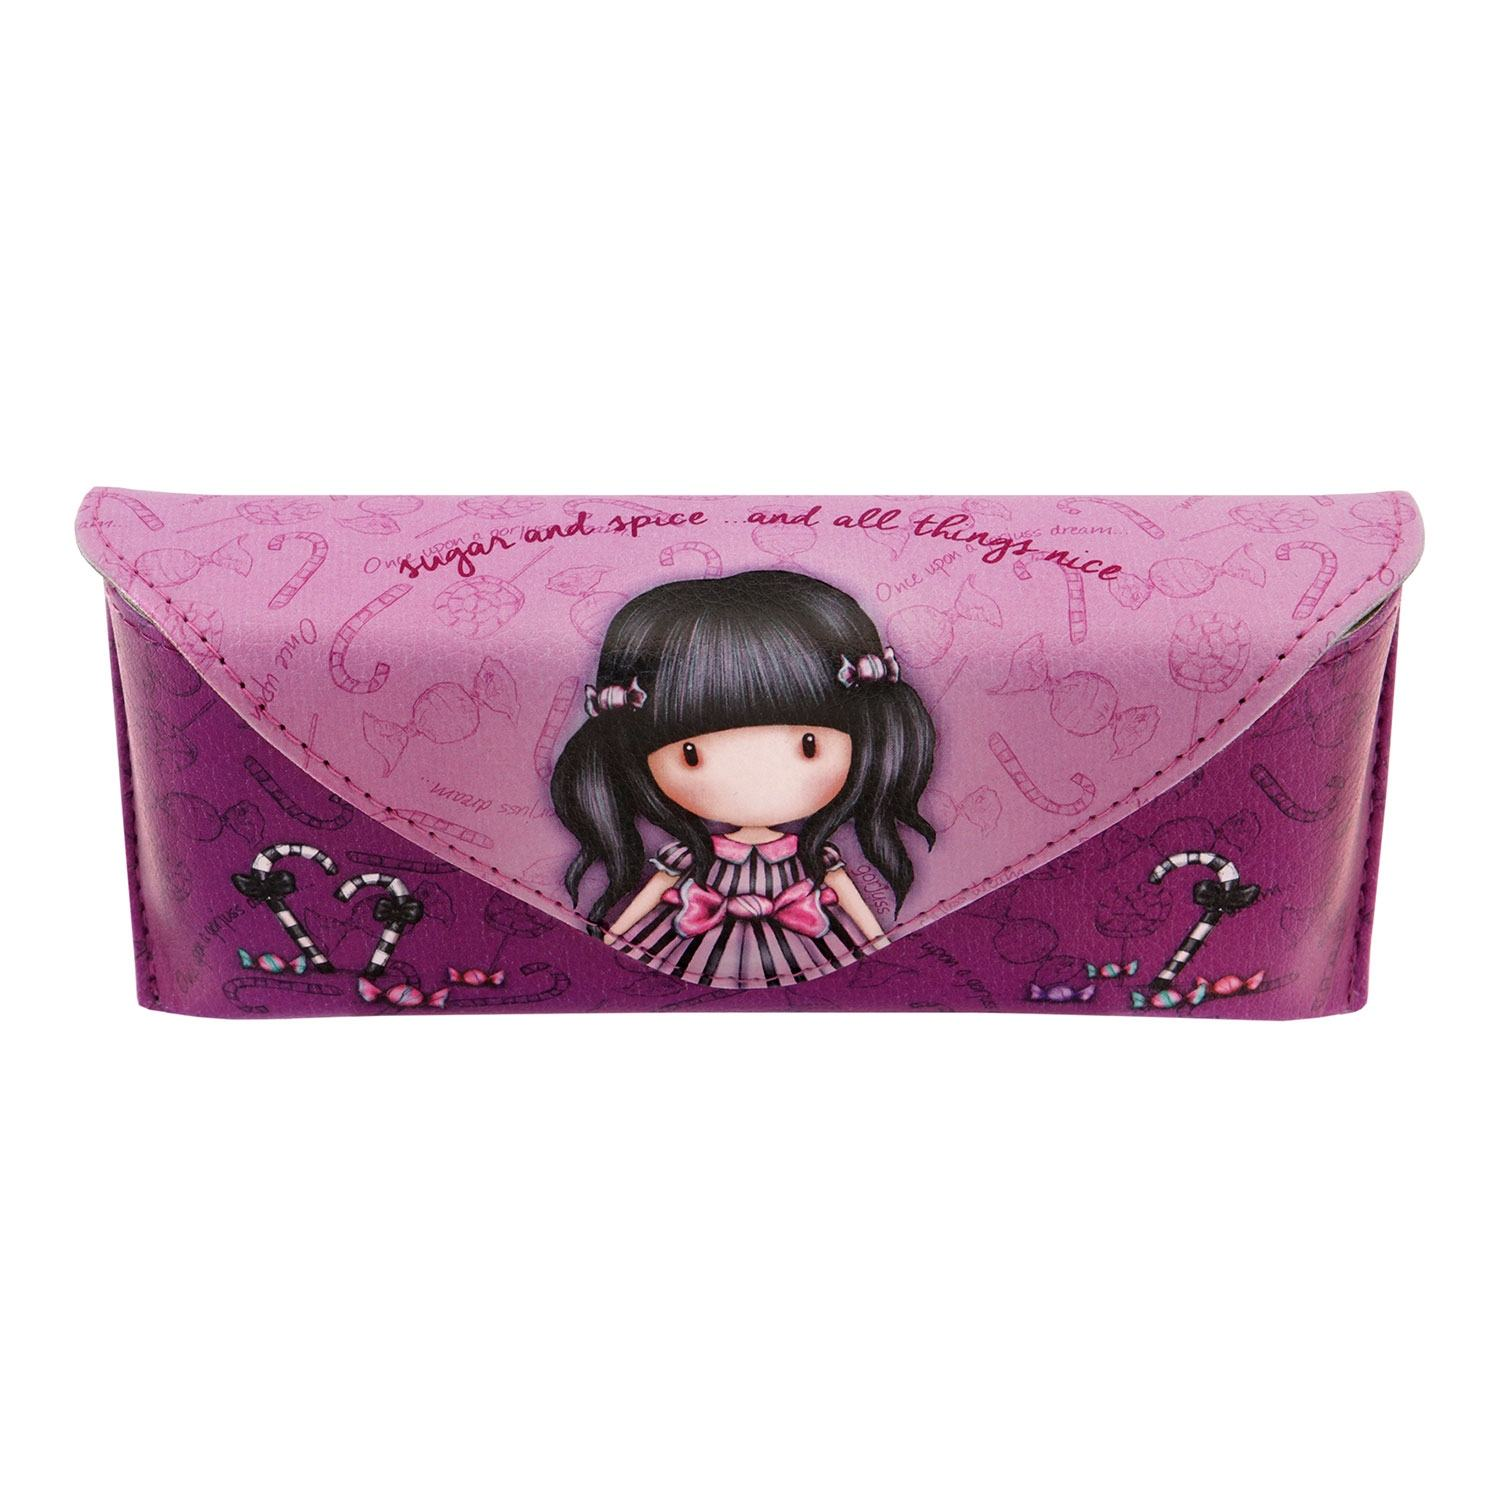 Gorjuss Sugar and Spice Large Glasses Case